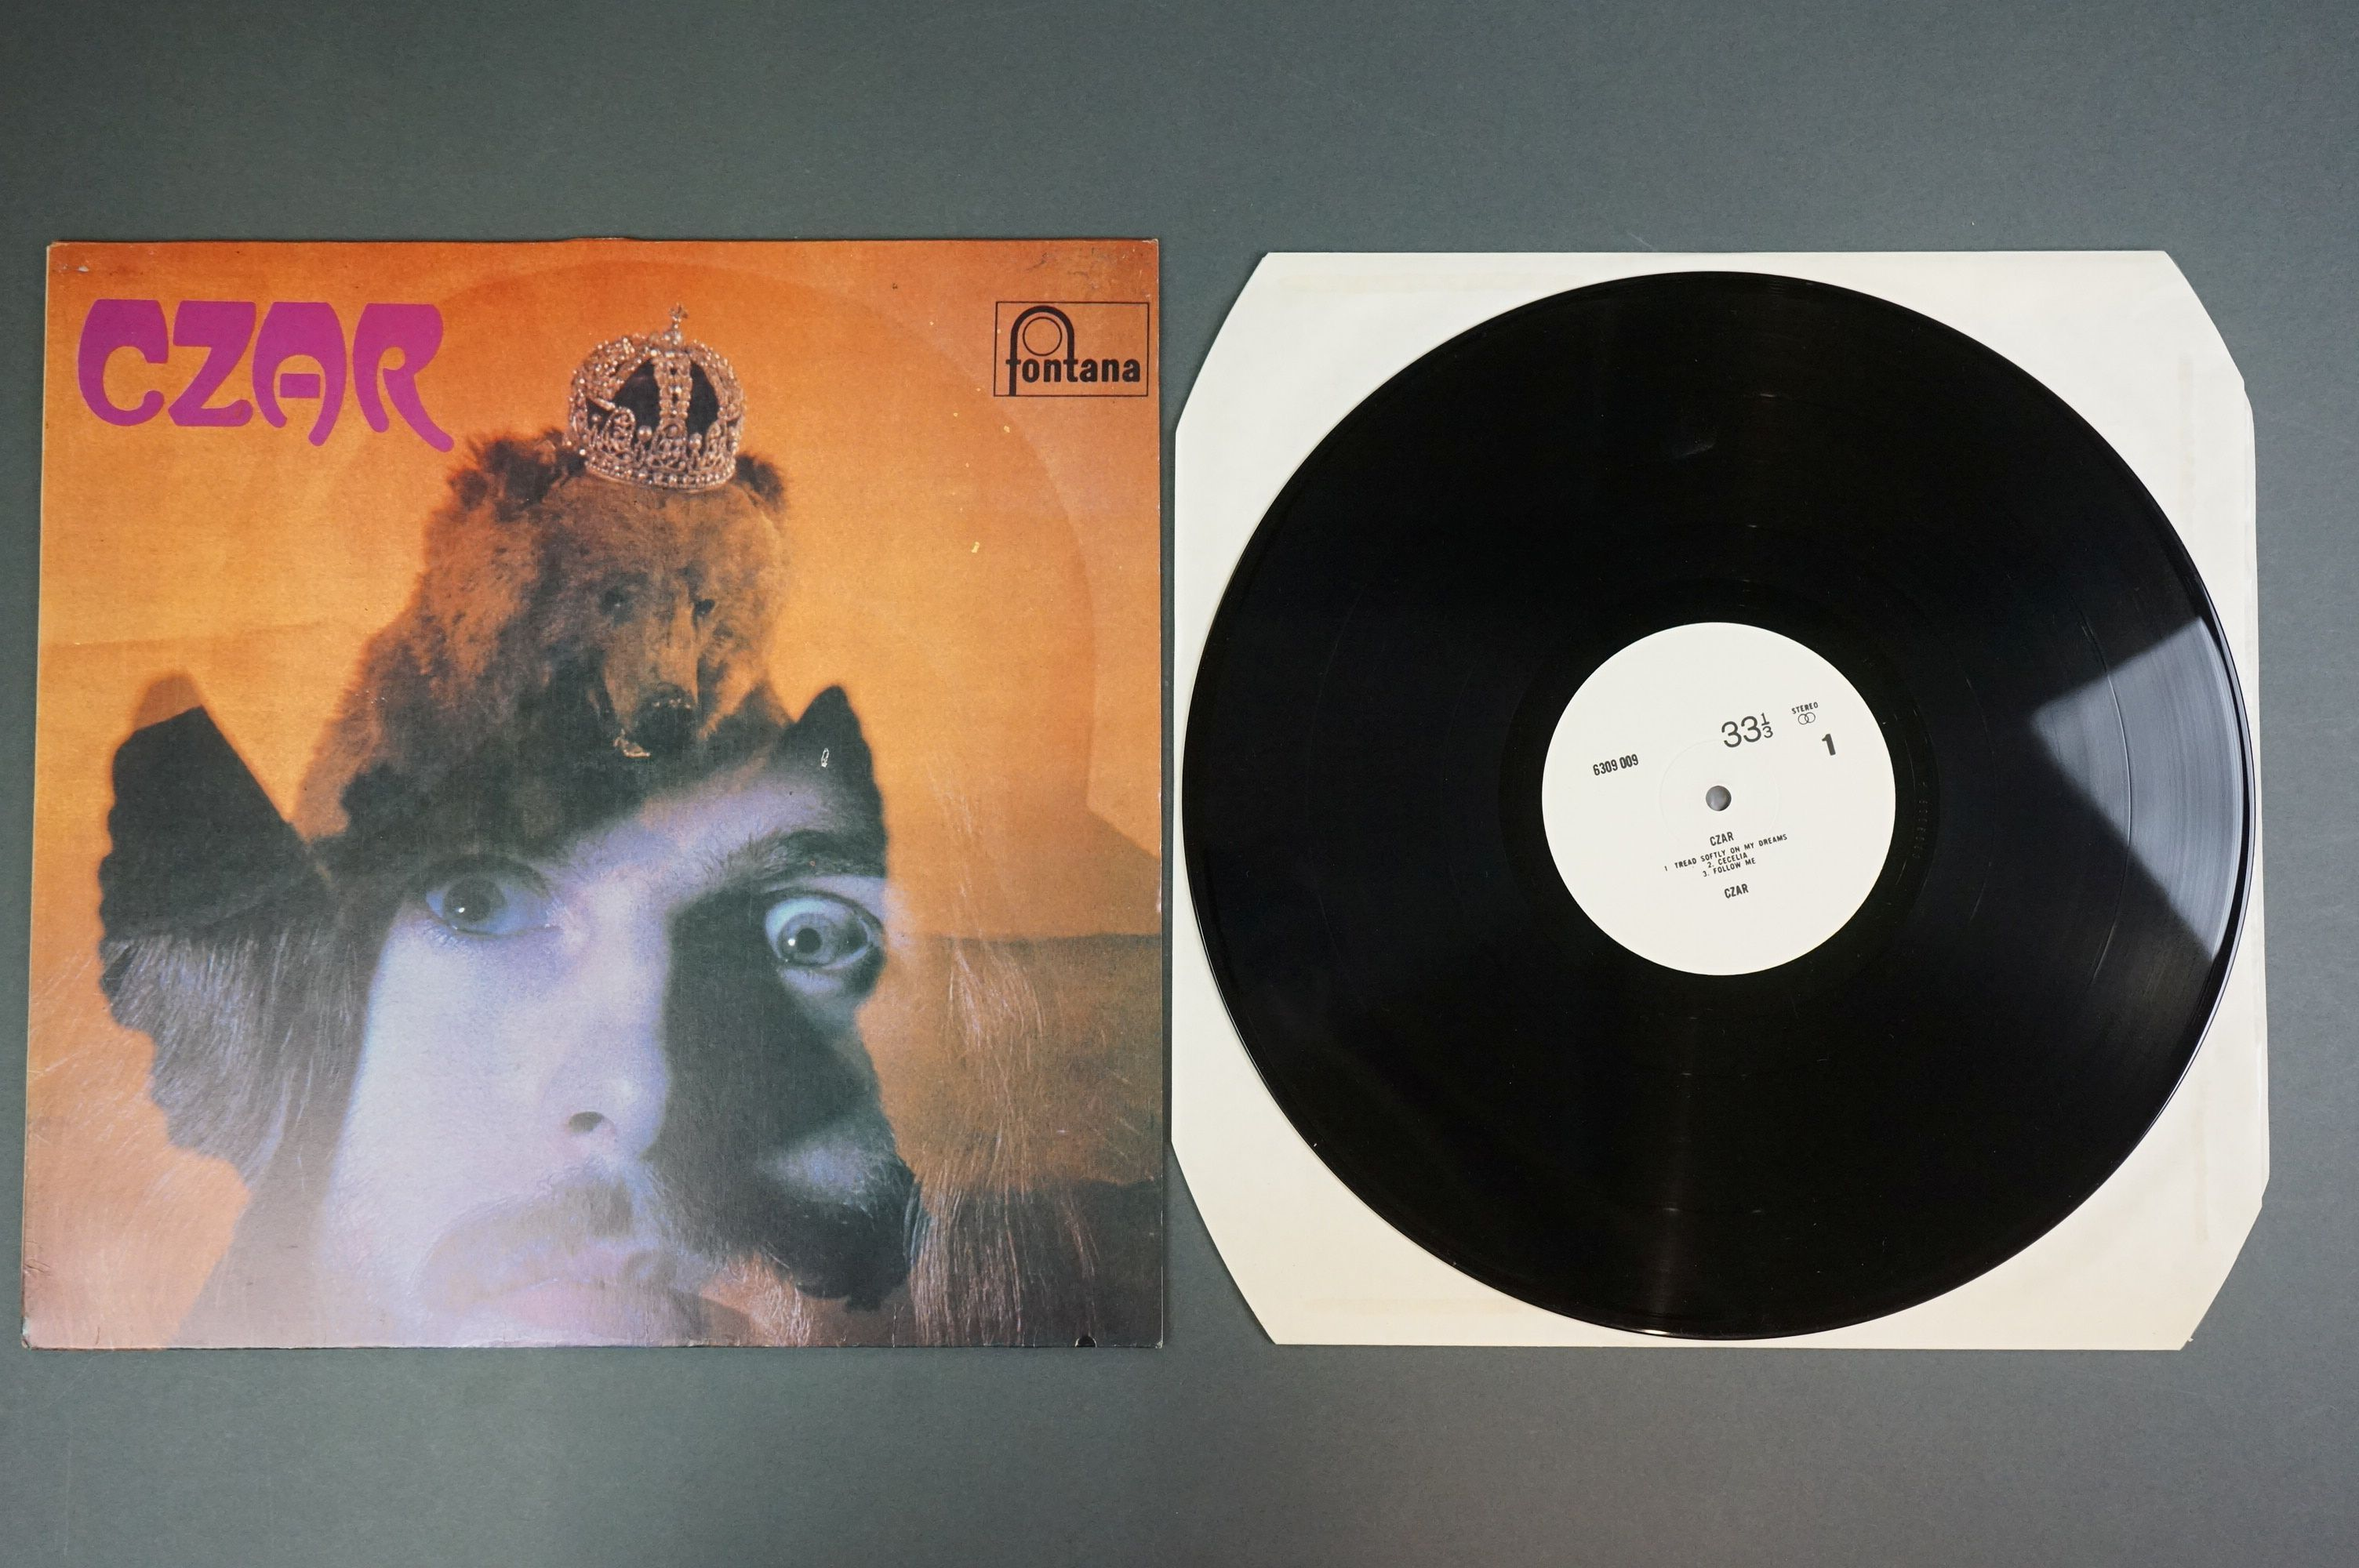 Vinyl - Czar self titled 6360009 unofficial release white album, with titles 33 and one third and - Image 2 of 3